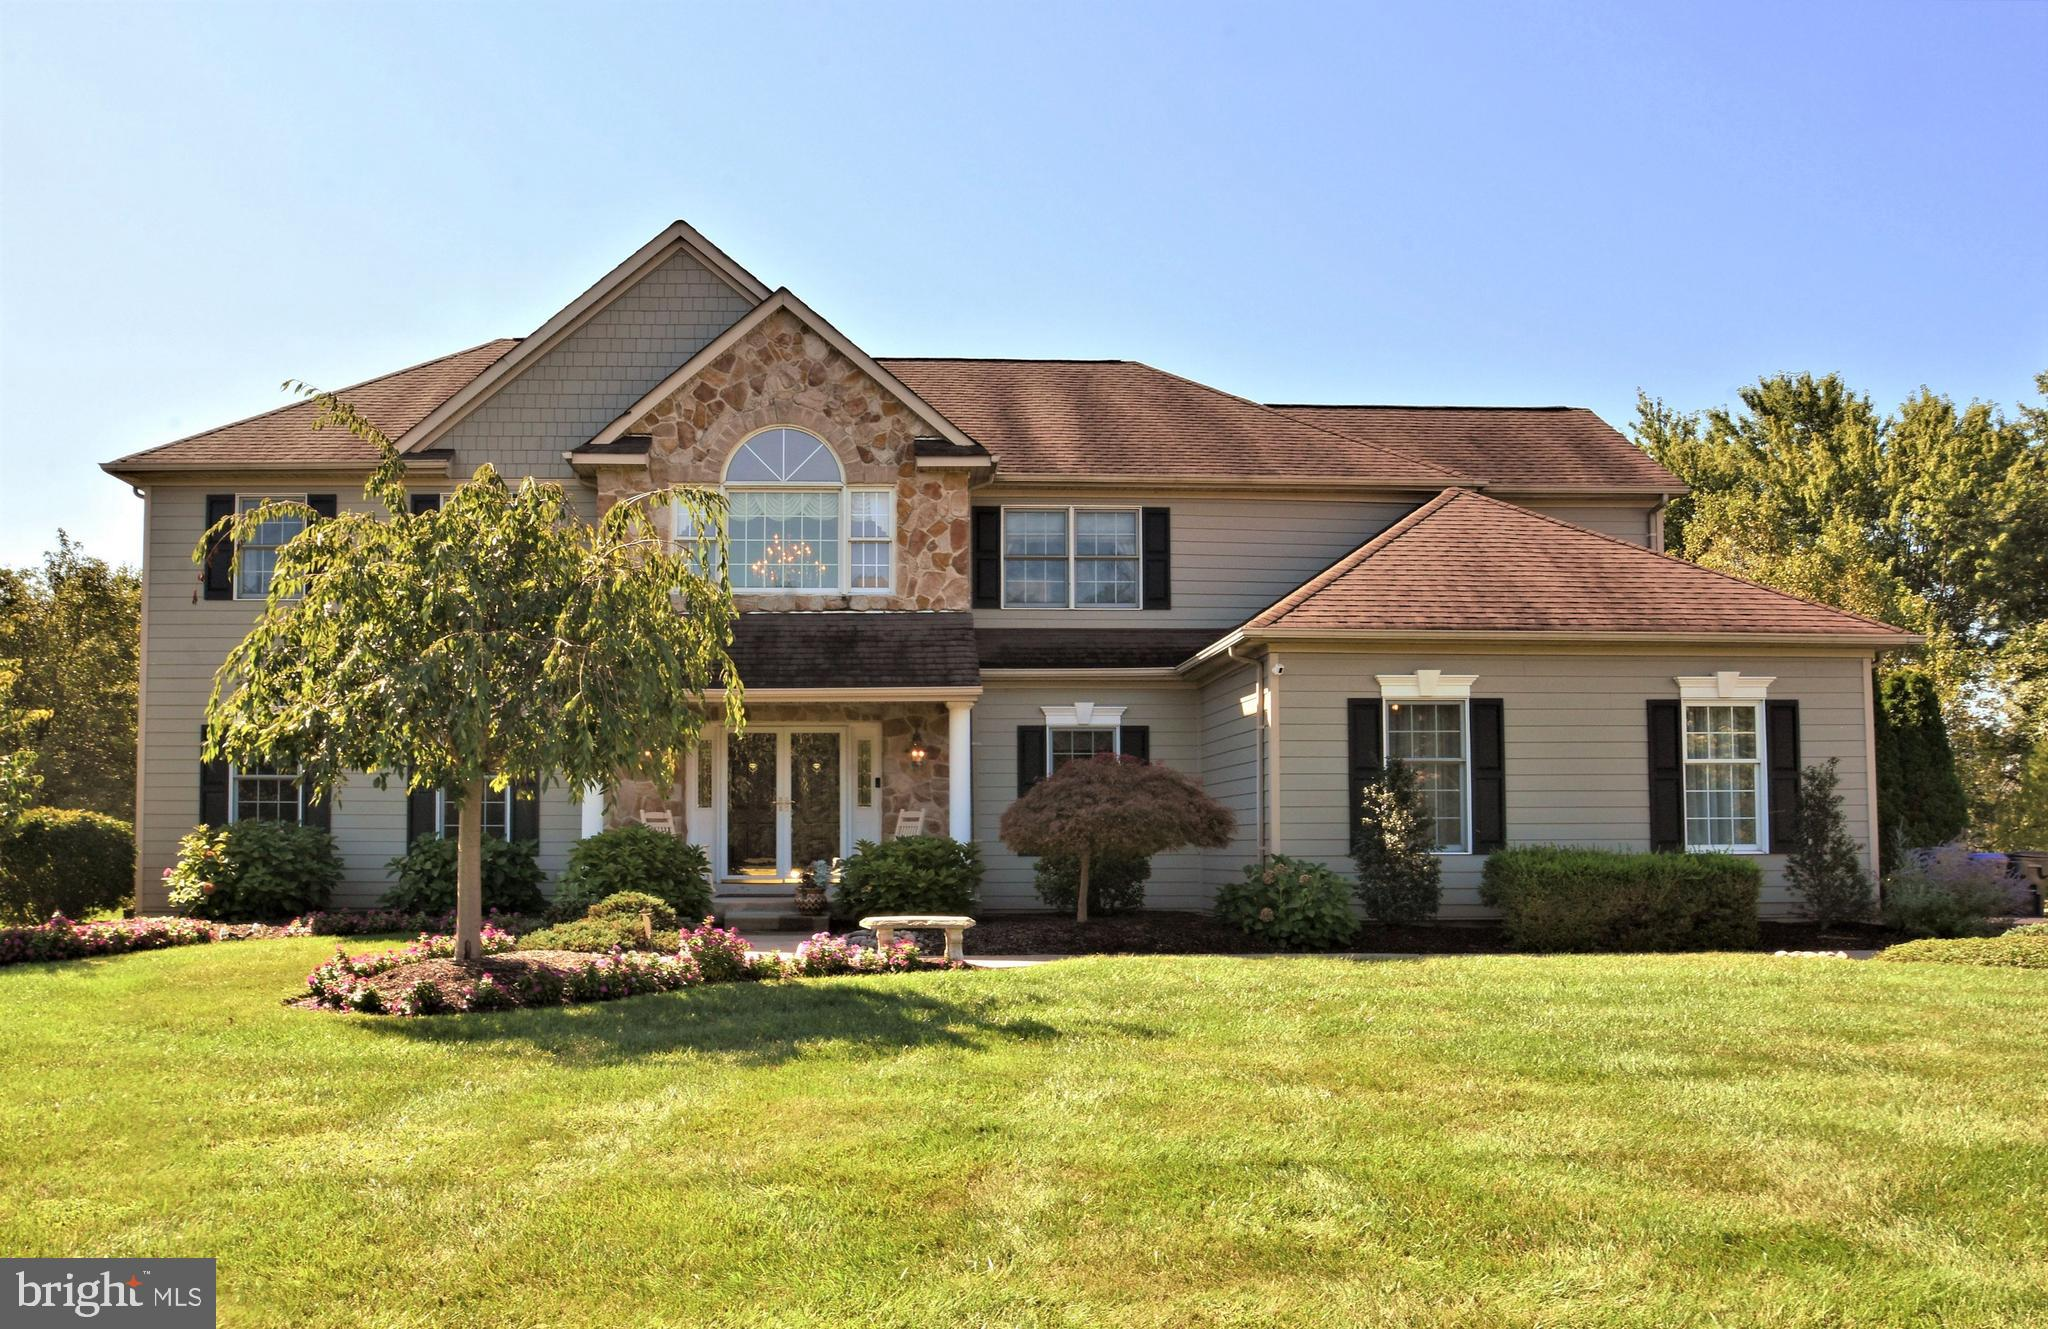 250 AMOUR CIRCLE, BLUE BELL, PA 19422